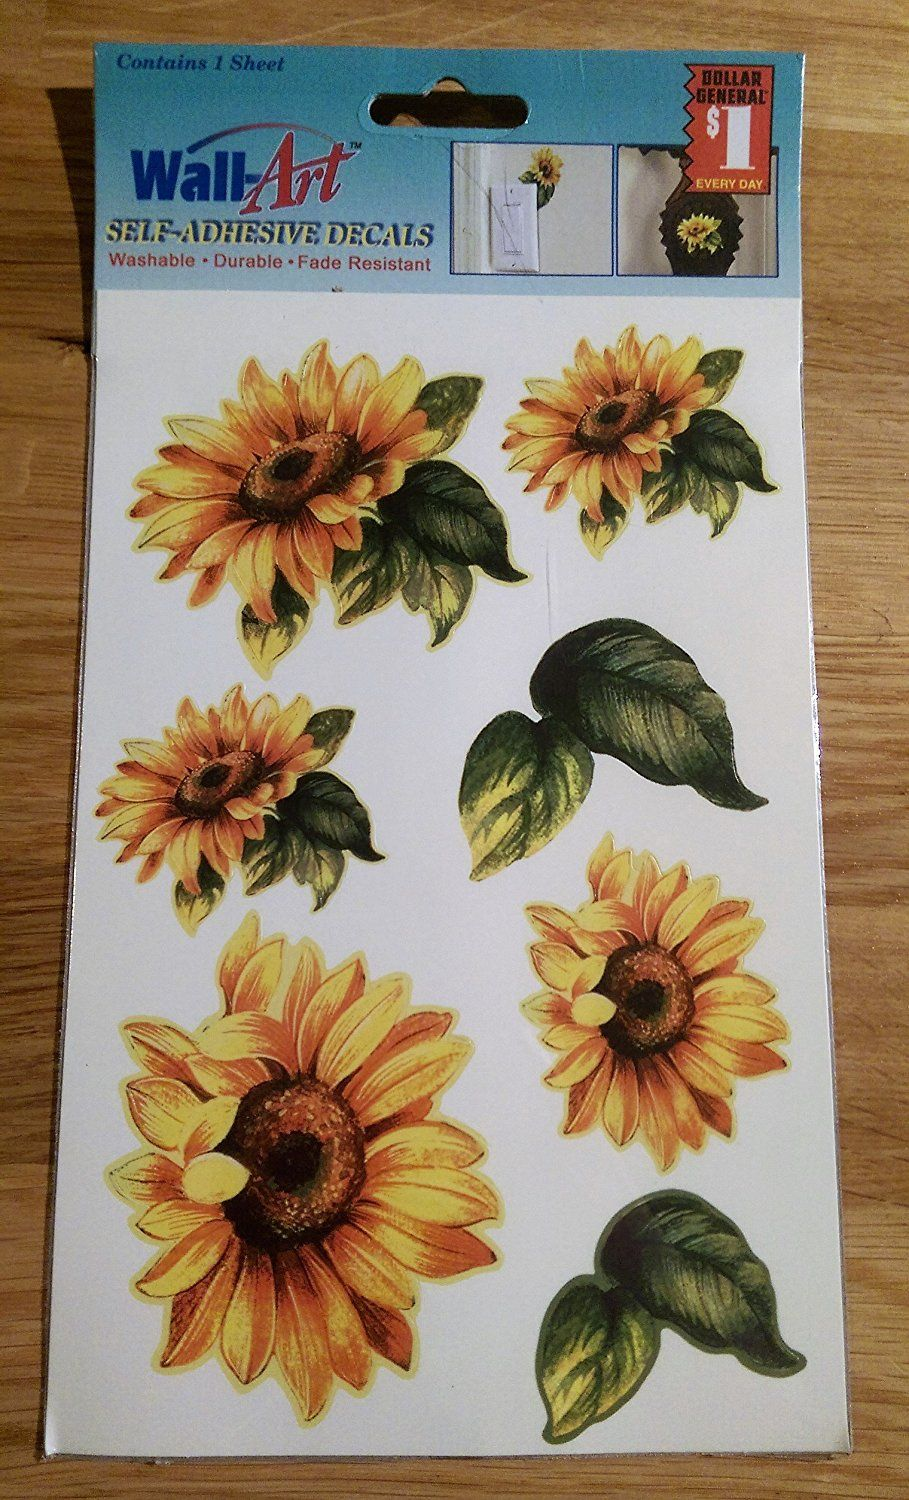 Daisy Wall-Art Self-Adhesive Decals >>> To view further for this item, visit the image link.